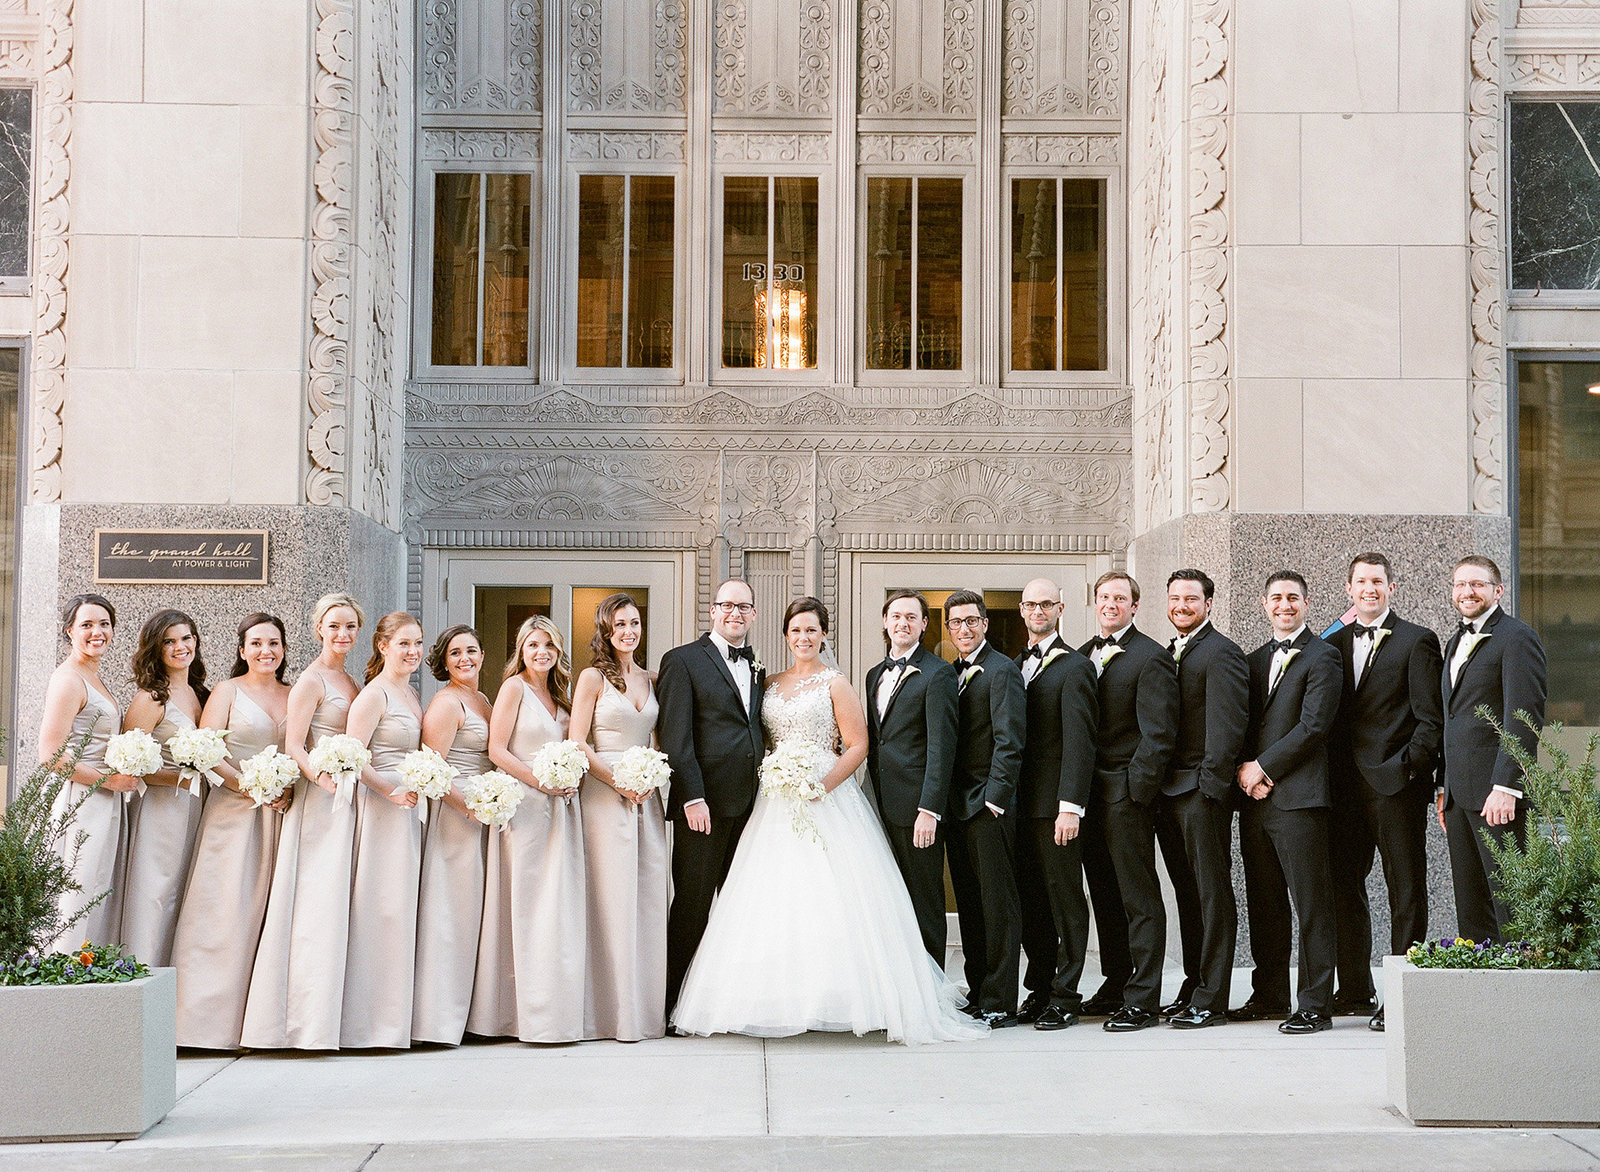 Pura-Soul-Photo-Moye-Kansas-City-Wedding-Film-85